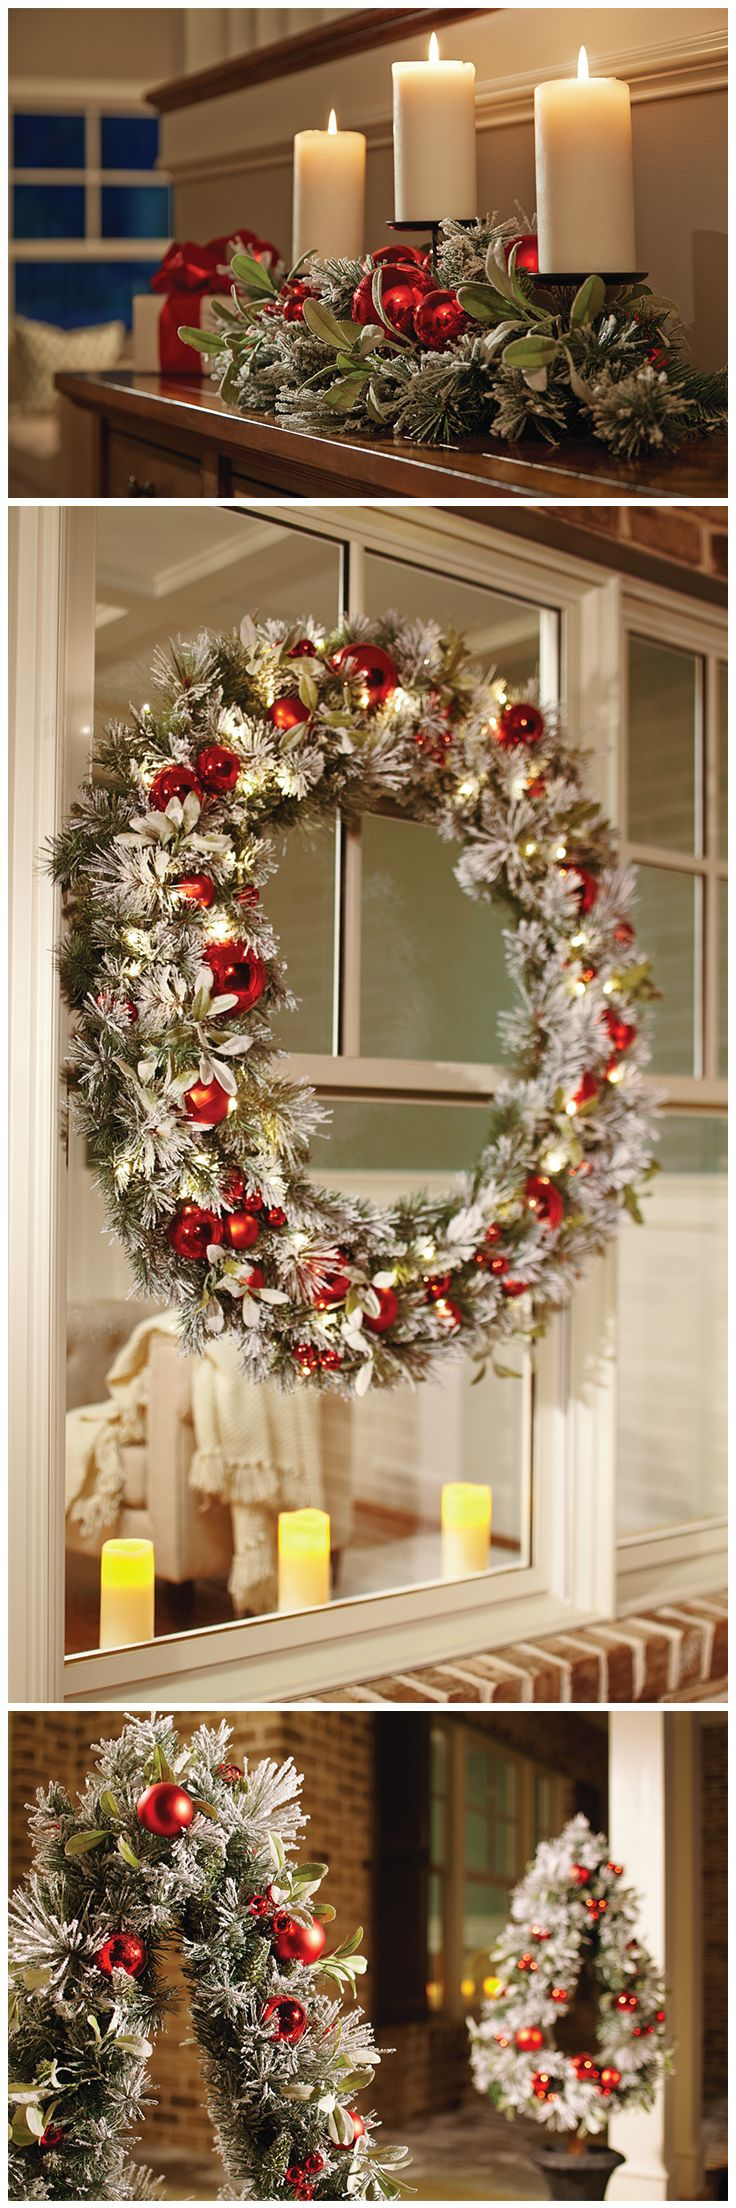 The frosty look of snow is a sure way to create a warm, Christmas-y feeling. That's the idea behind our Snowy Pine Greenery Collection. It has a cozy, familiar look whether outdoors on your entryway, or indoors on your Christmas mantel. The Home Depot has the garlands, wreaths, potted trees and more to create this look, or any Christmas style you're dreaming of. Click through to get started on your holiday decor.